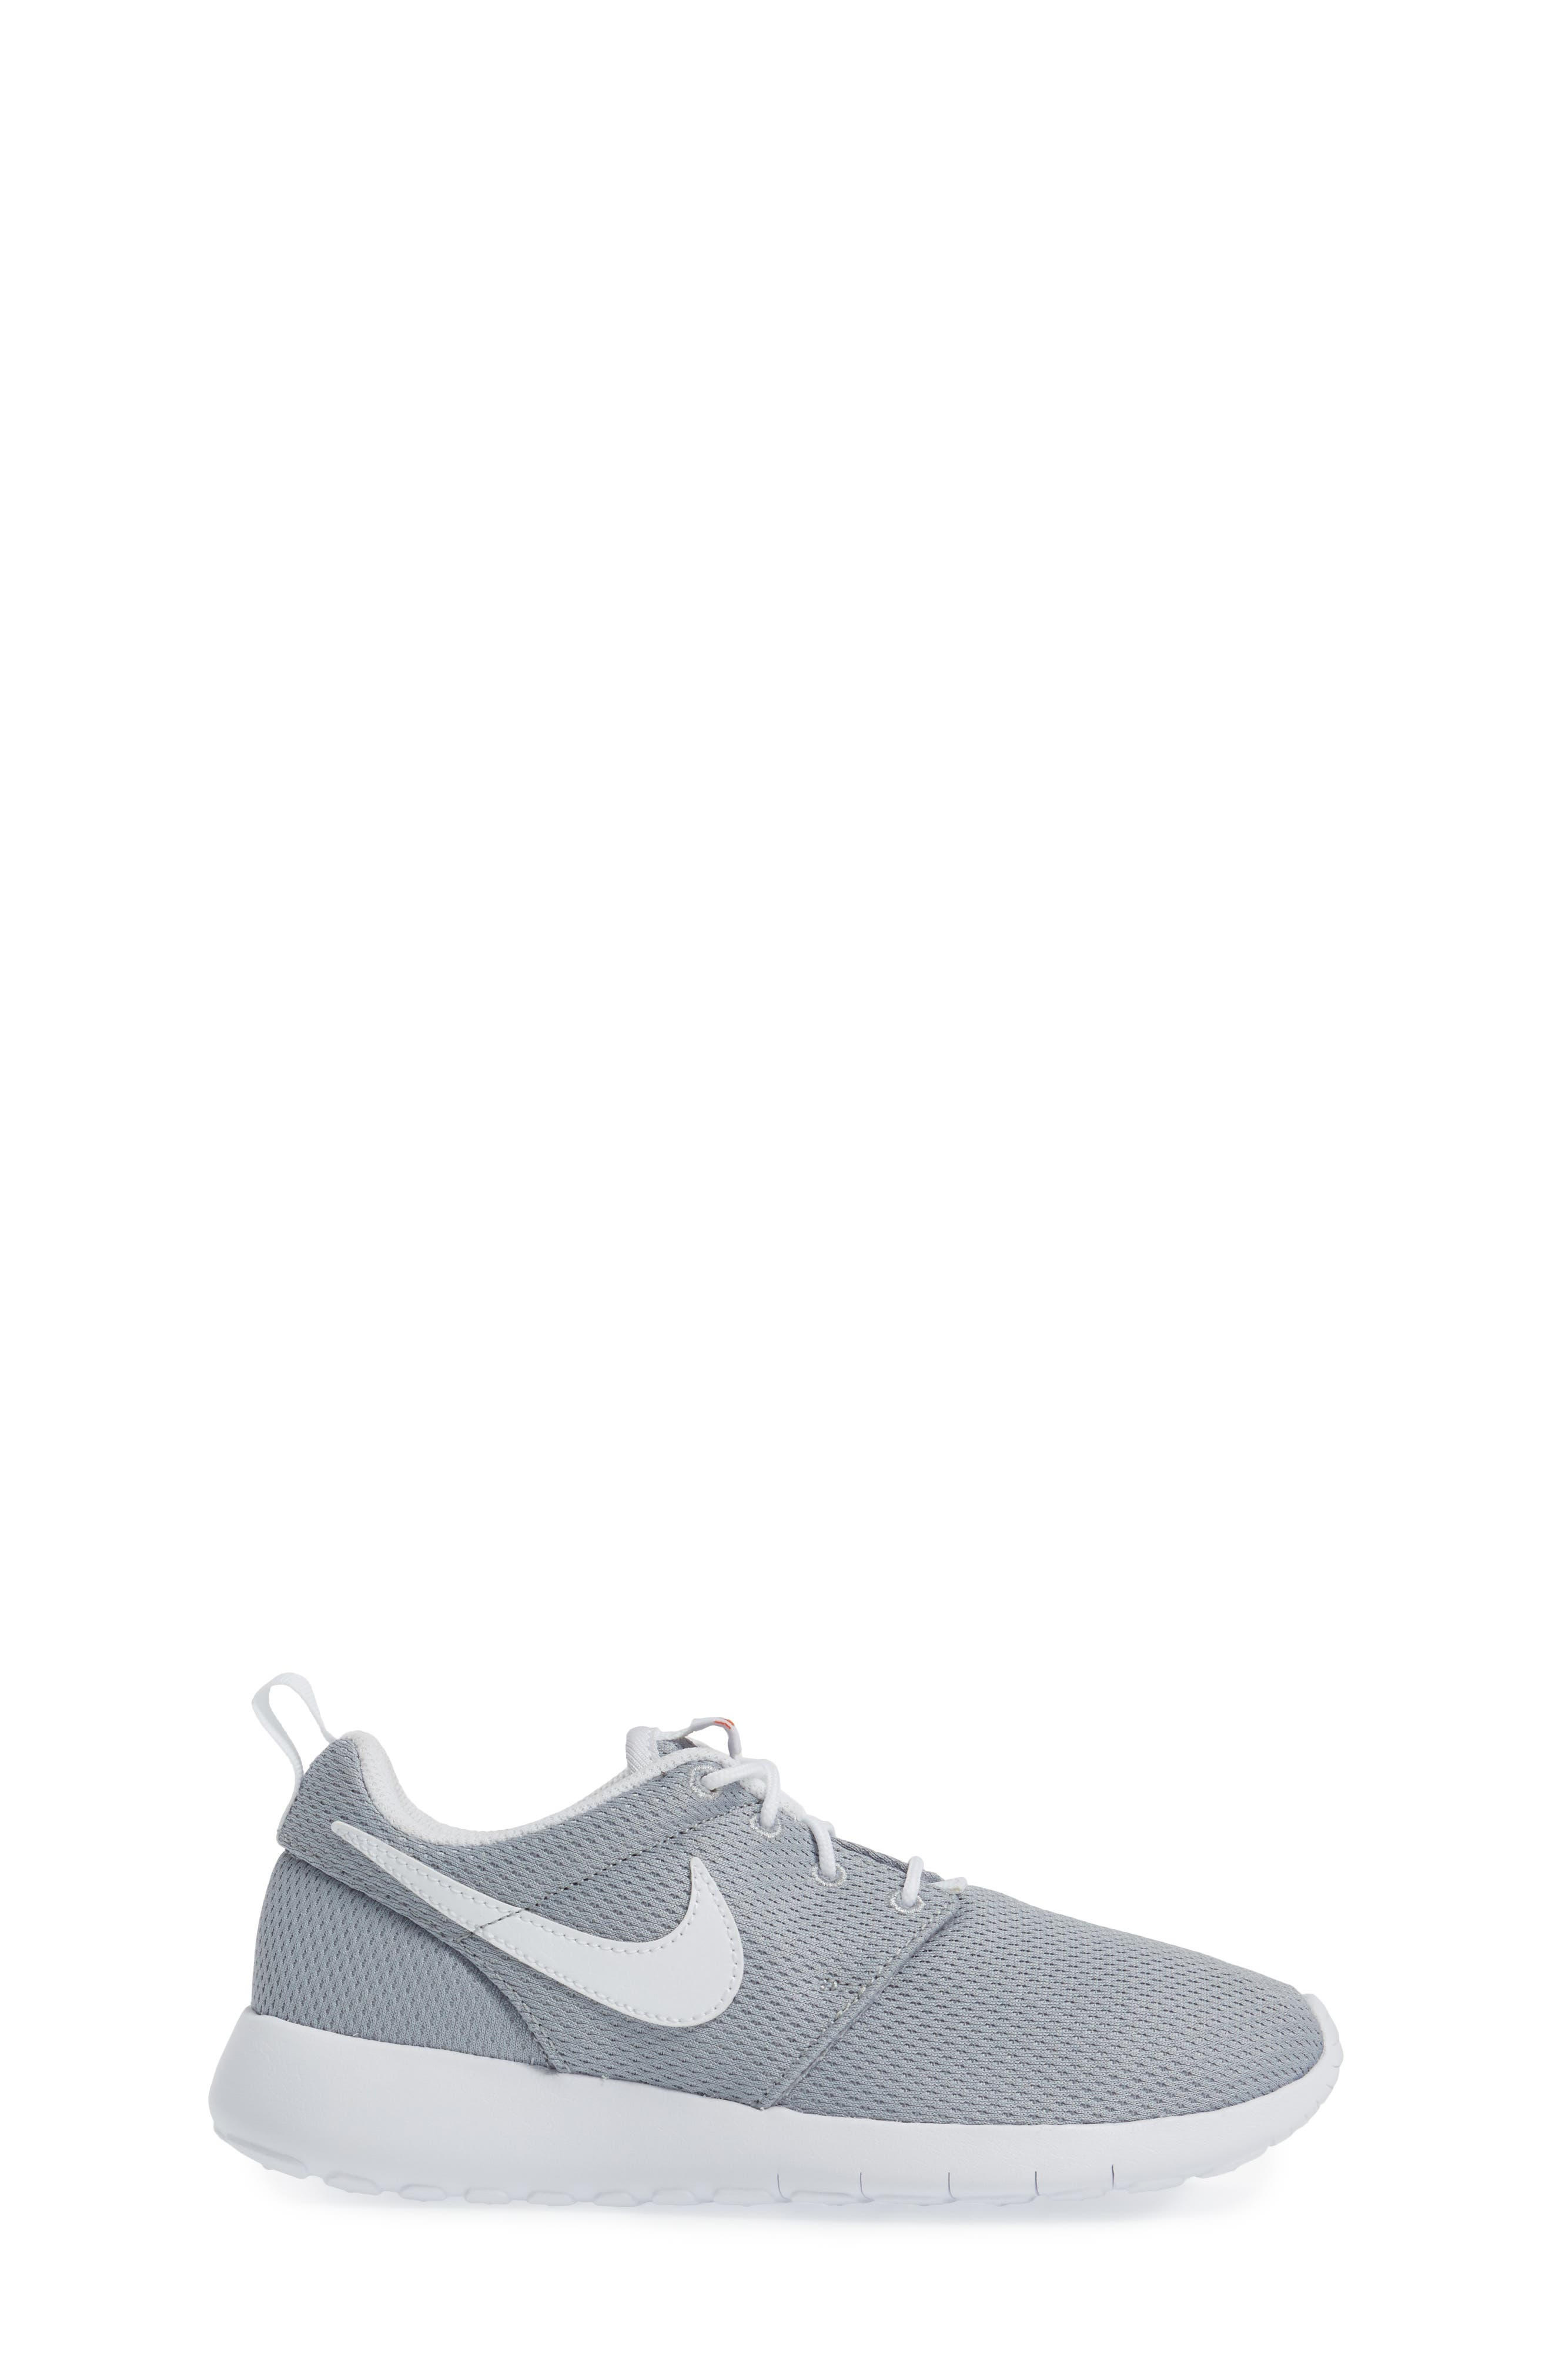 'Roshe Run' Sneaker,                             Alternate thumbnail 125, color,